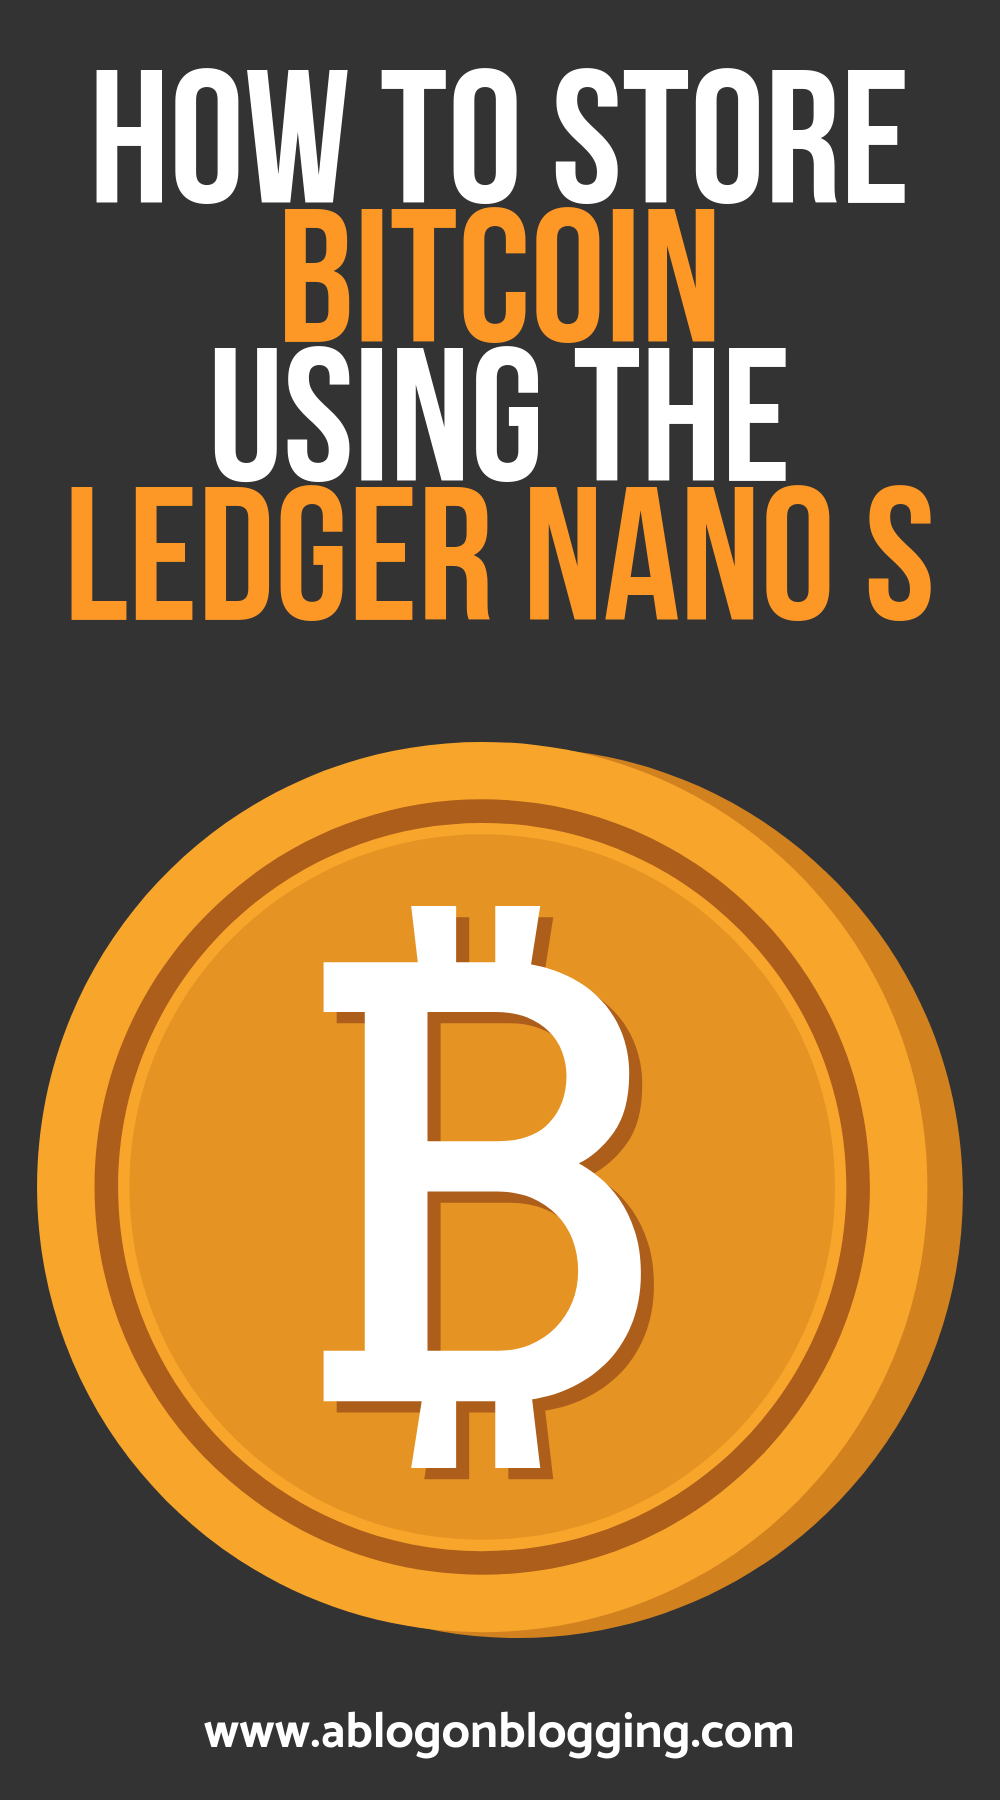 HOW TO STORE BITCOIN ON THE LEDGER NANO S